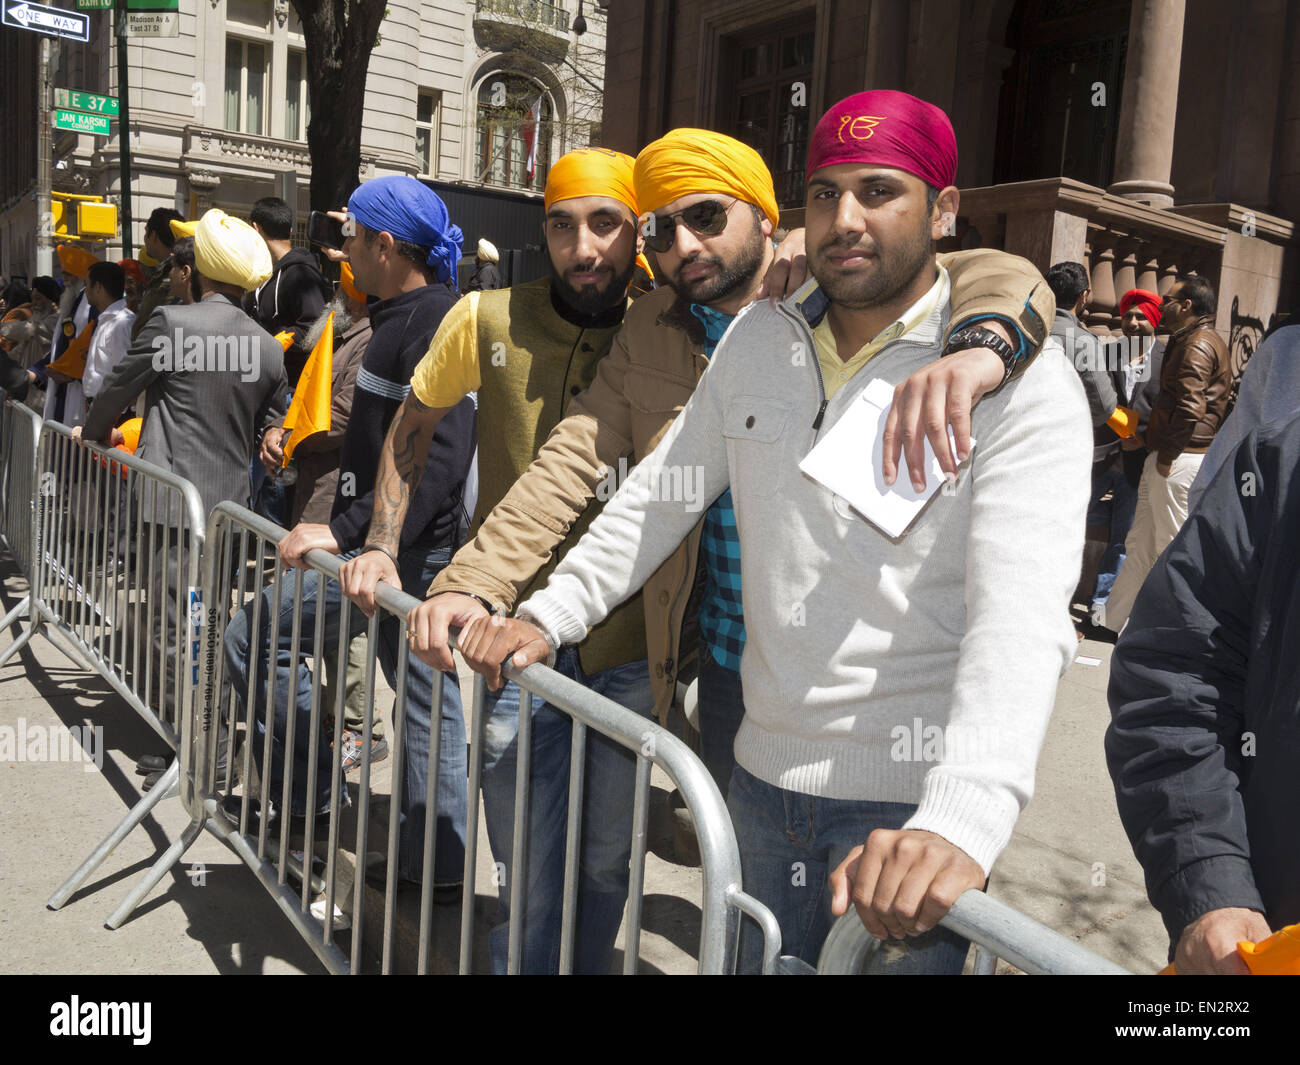 Annual Sikh Day Parade and festival on Madison Avenue in New York City, 2015. - Stock Image